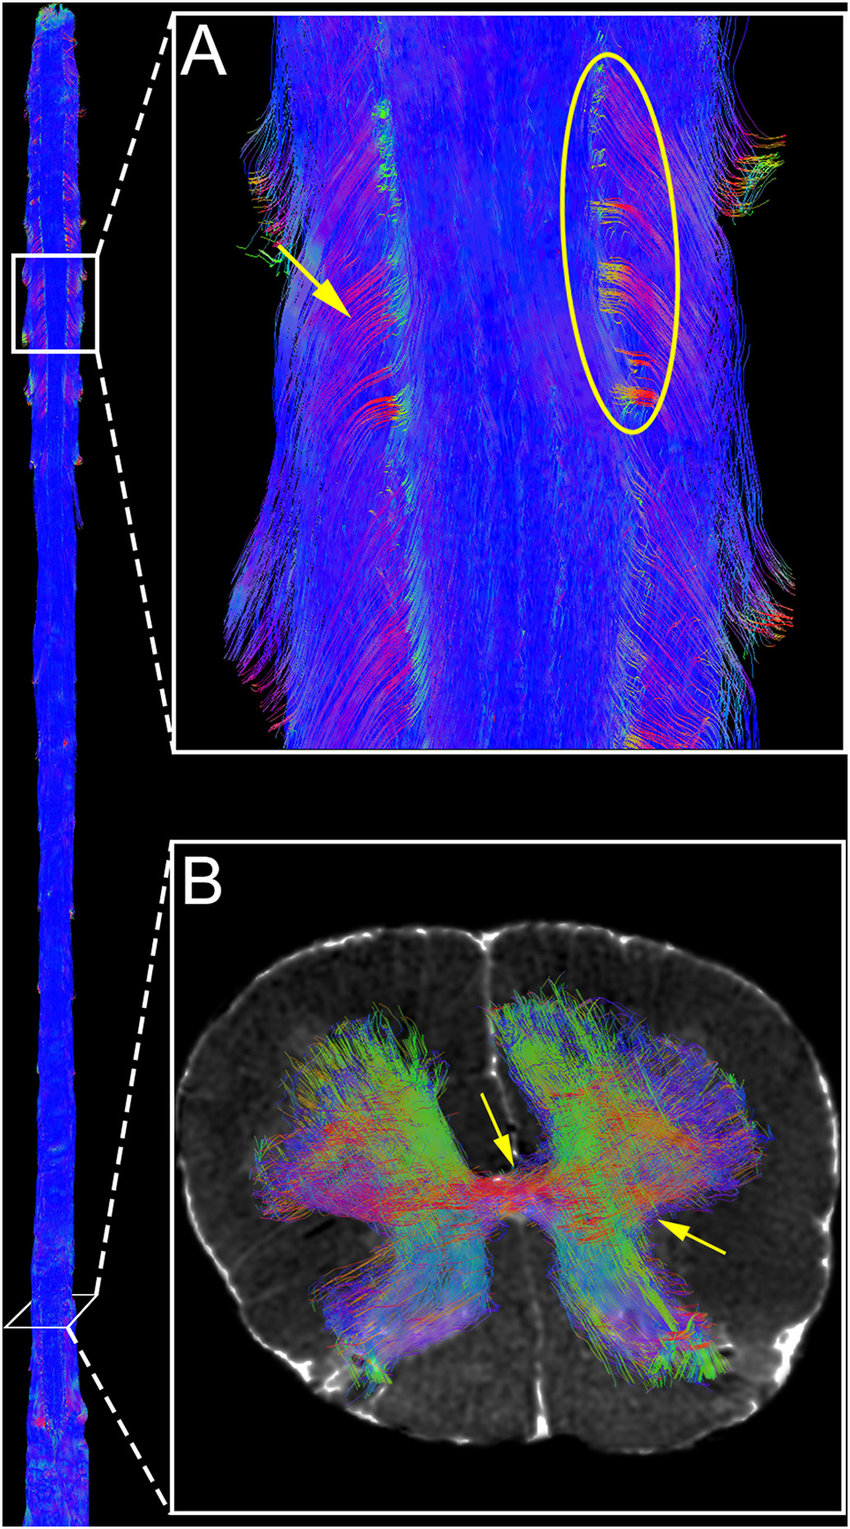 hight resolution of directionally colored diffusion tractography of the human spinal cord a dorsal view of whole spinal